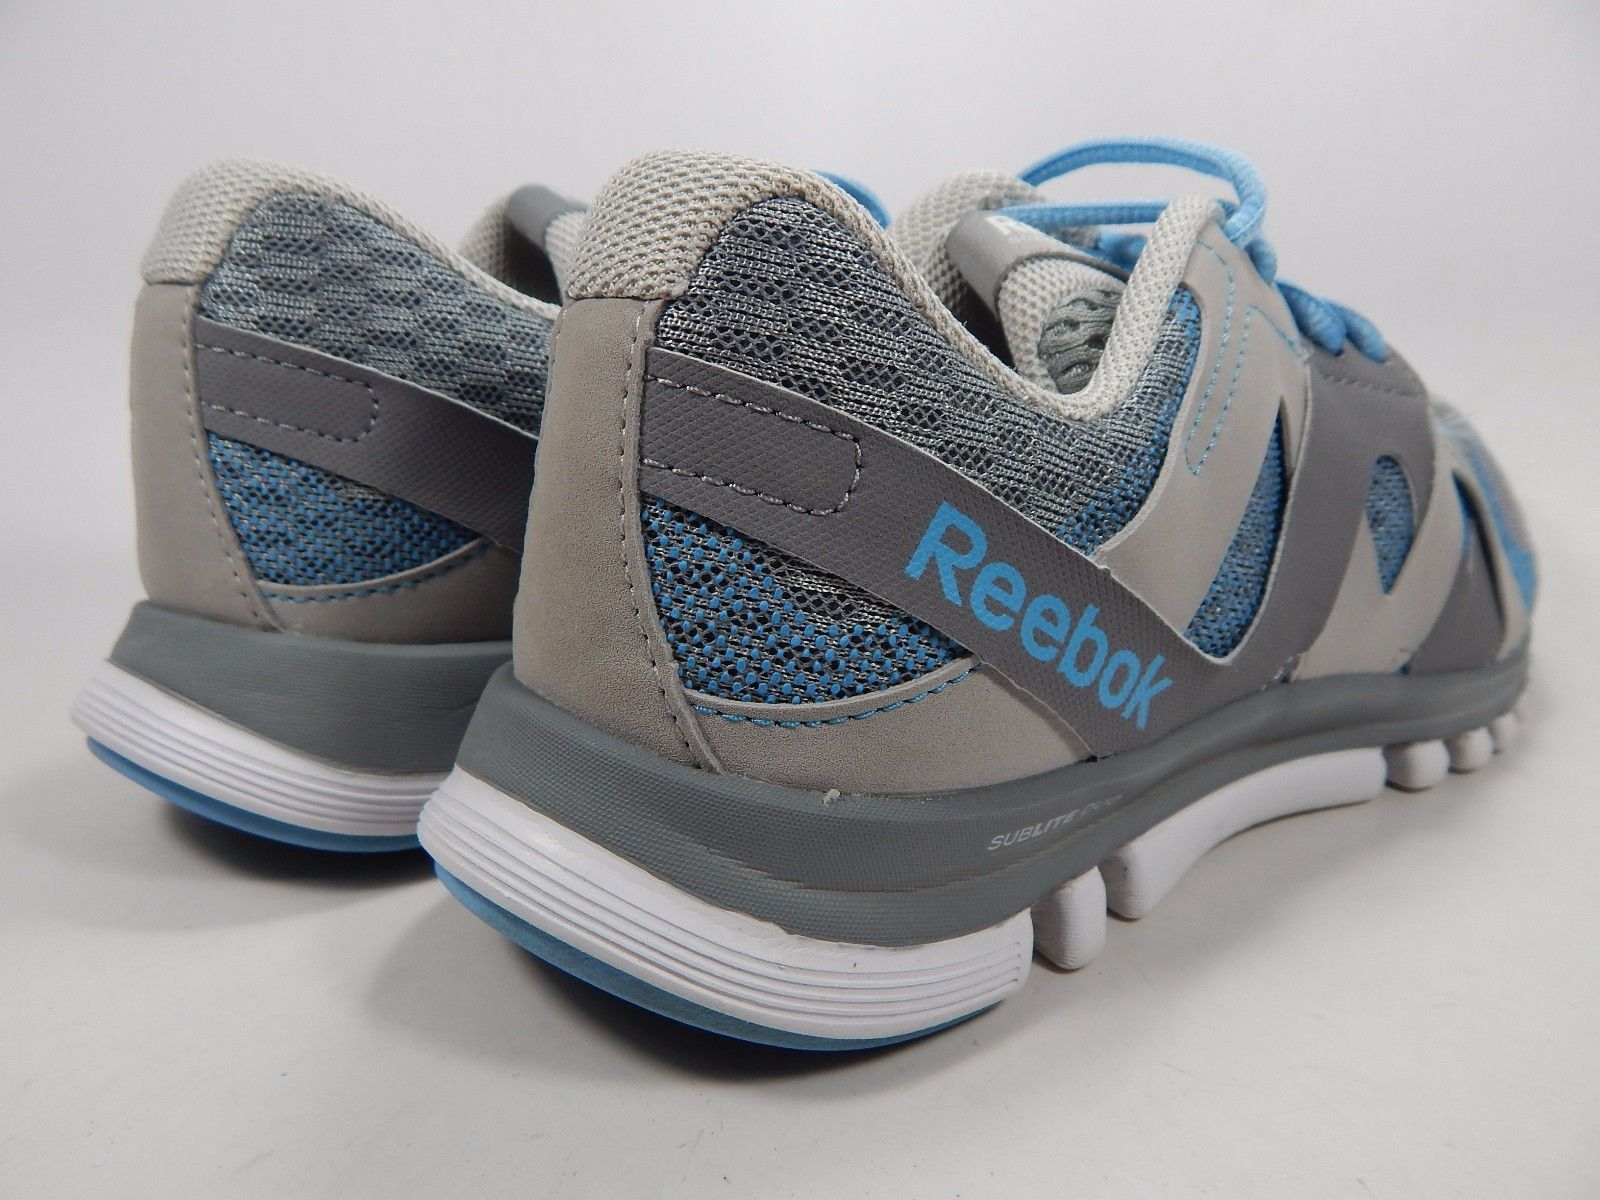 Reebok Sublite Duo Women's Running Shoes Size US 7.5 M (B) EU 38 Gray Blue